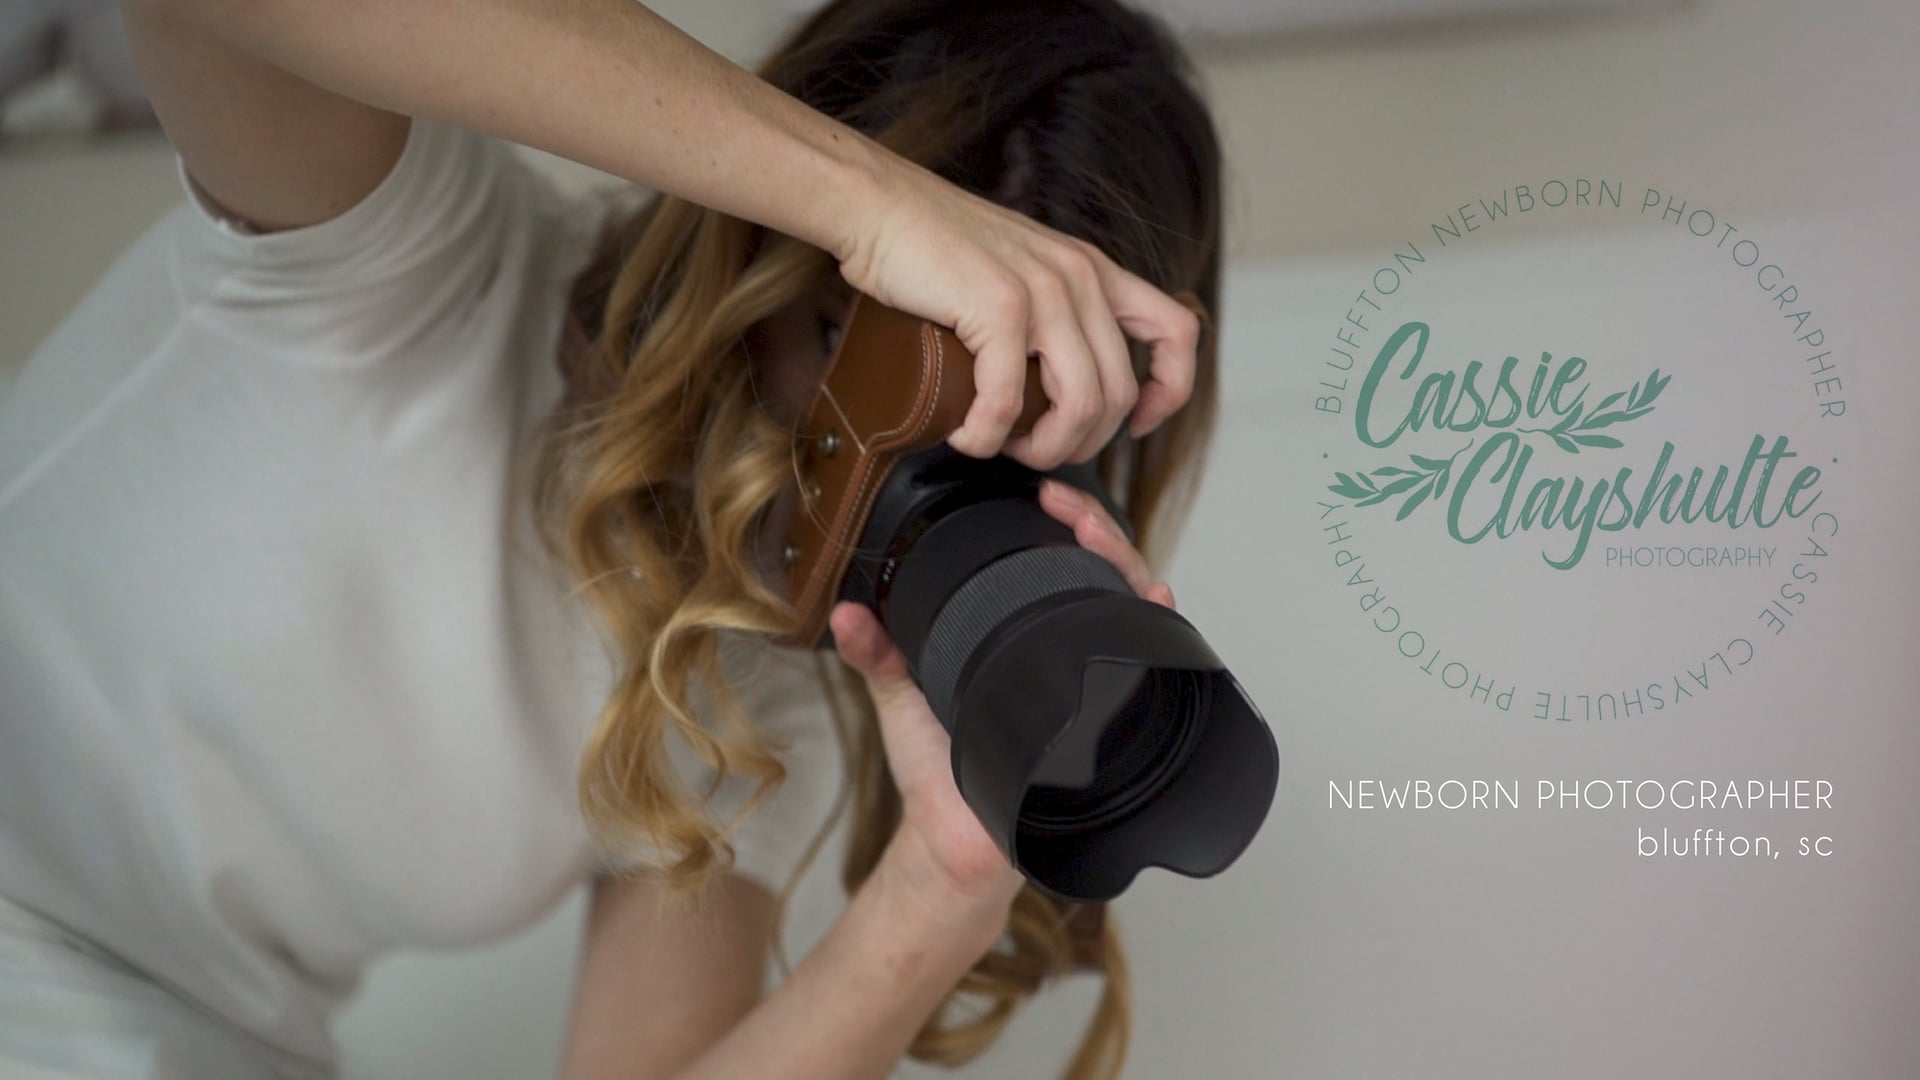 Cassie Clayshulte Photography